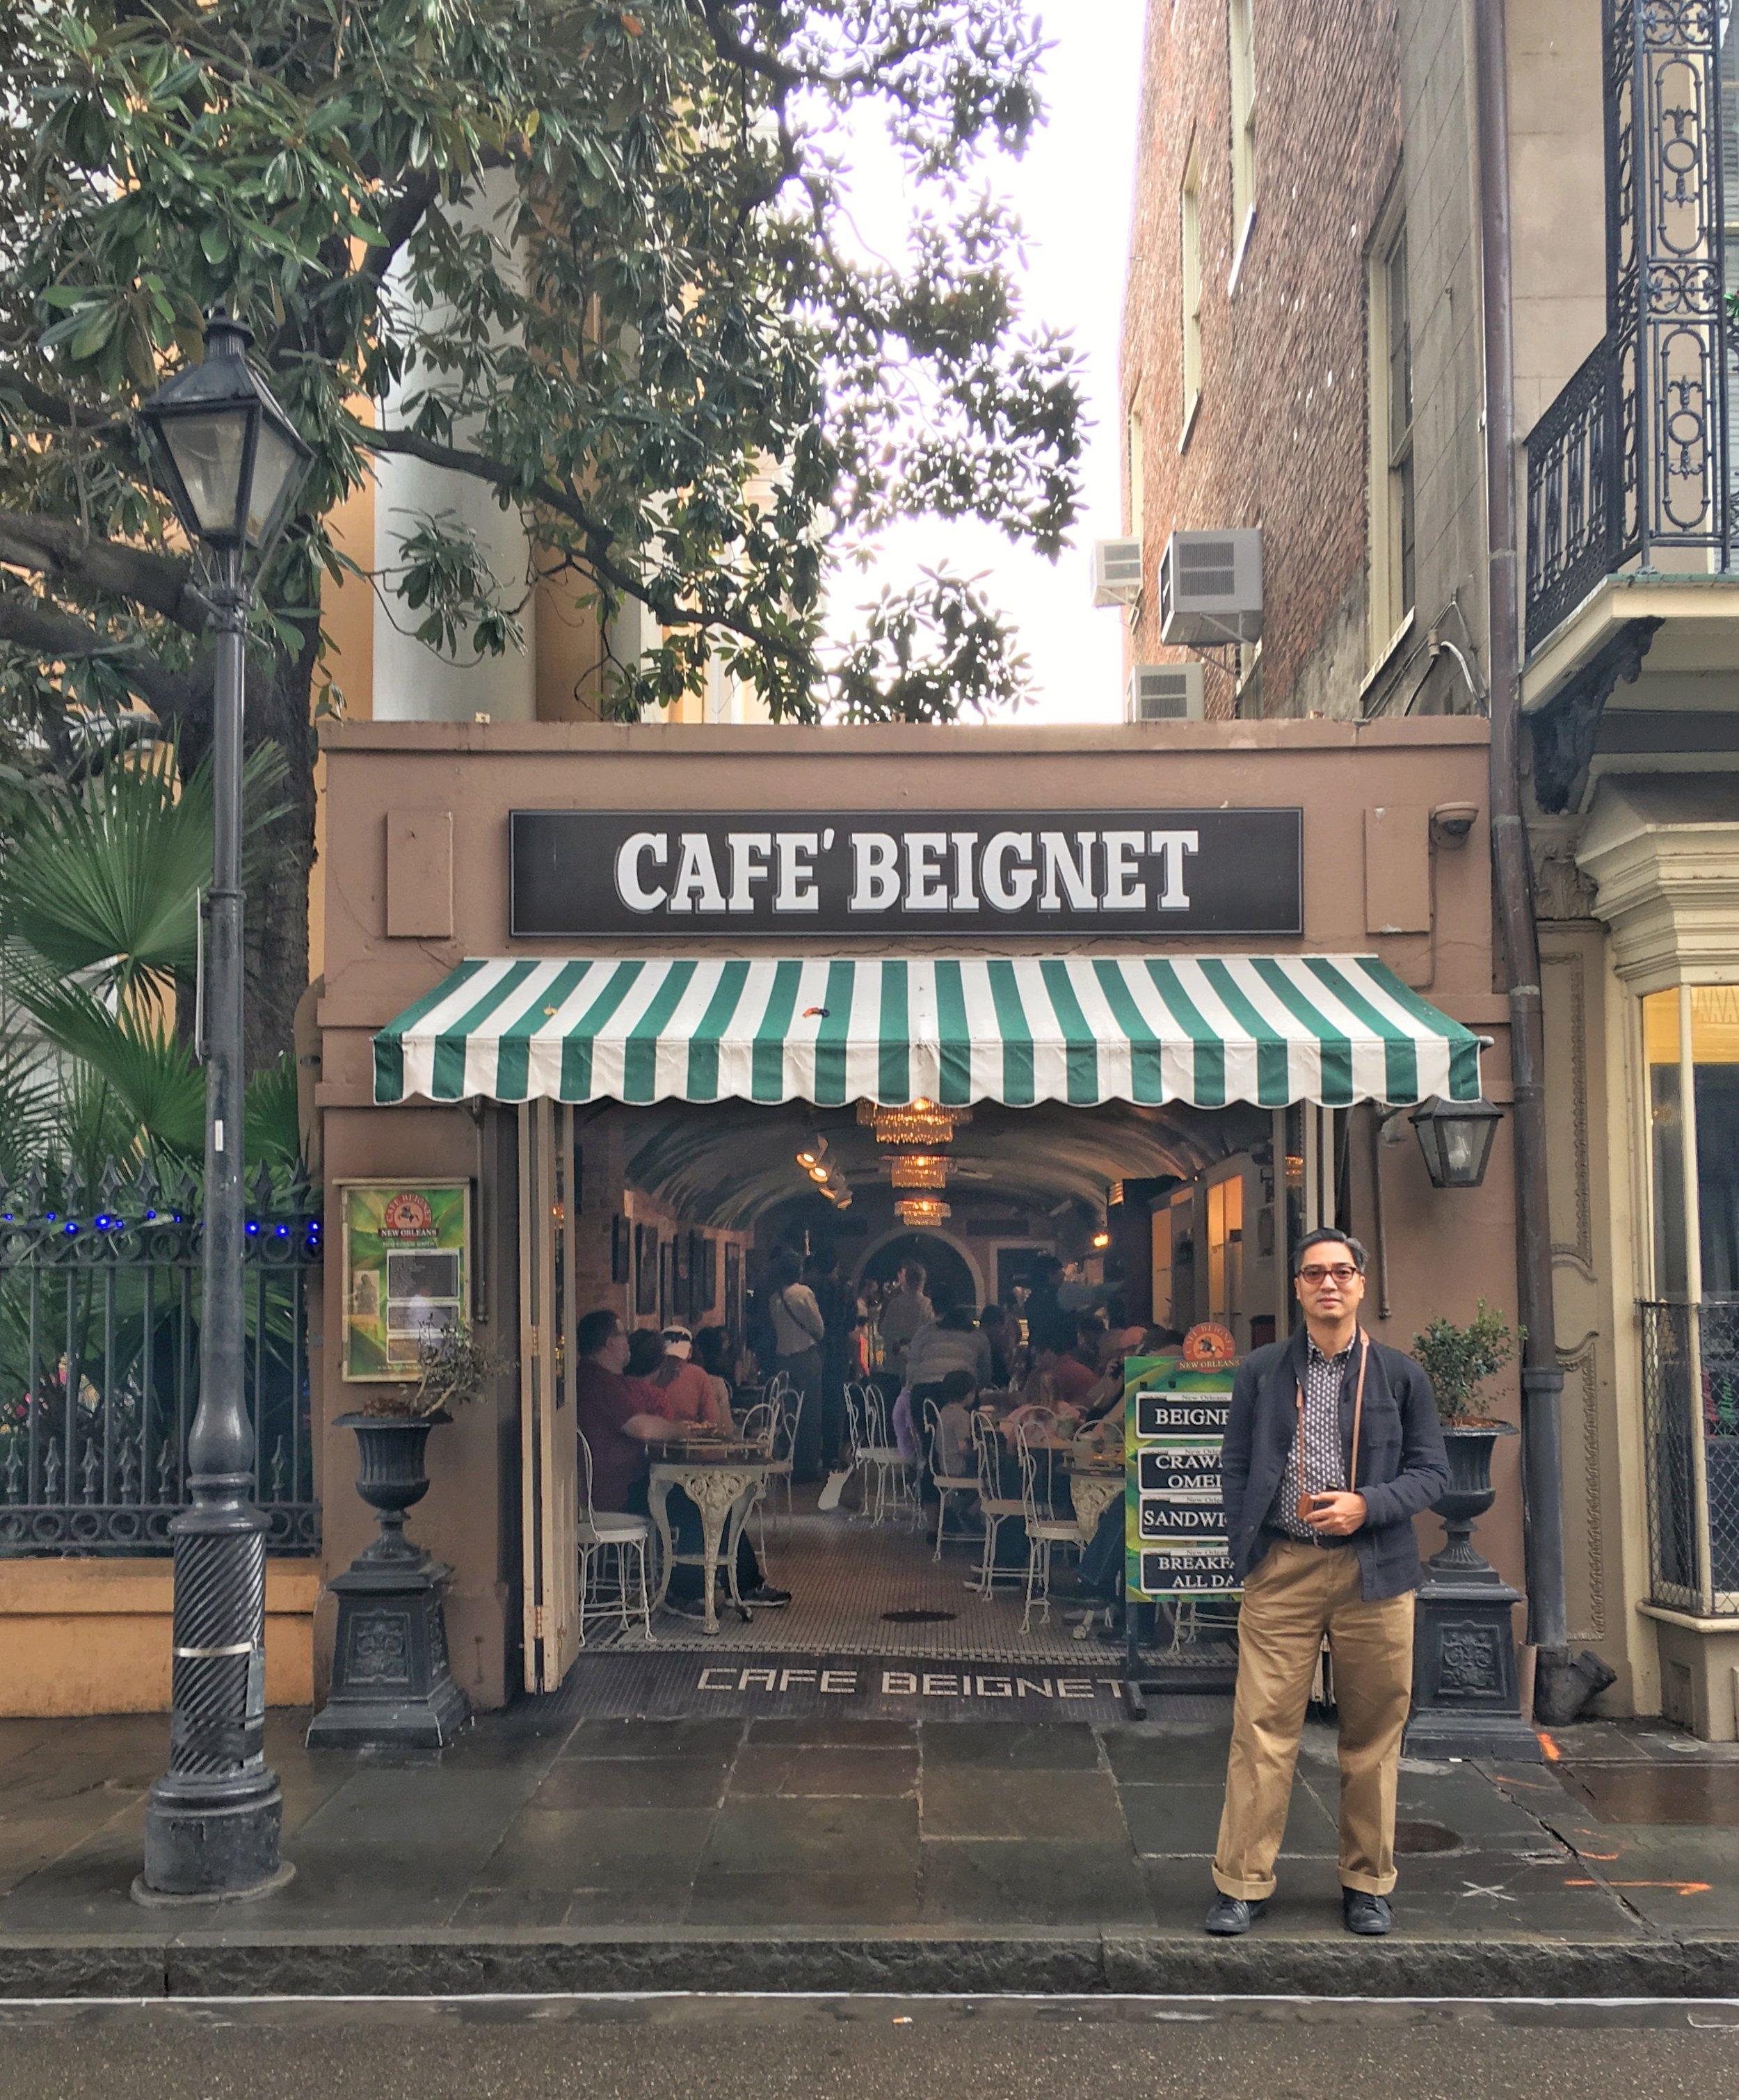 Come to Cafè Beignet instead and avoid the insane line at Cafè du Monde.